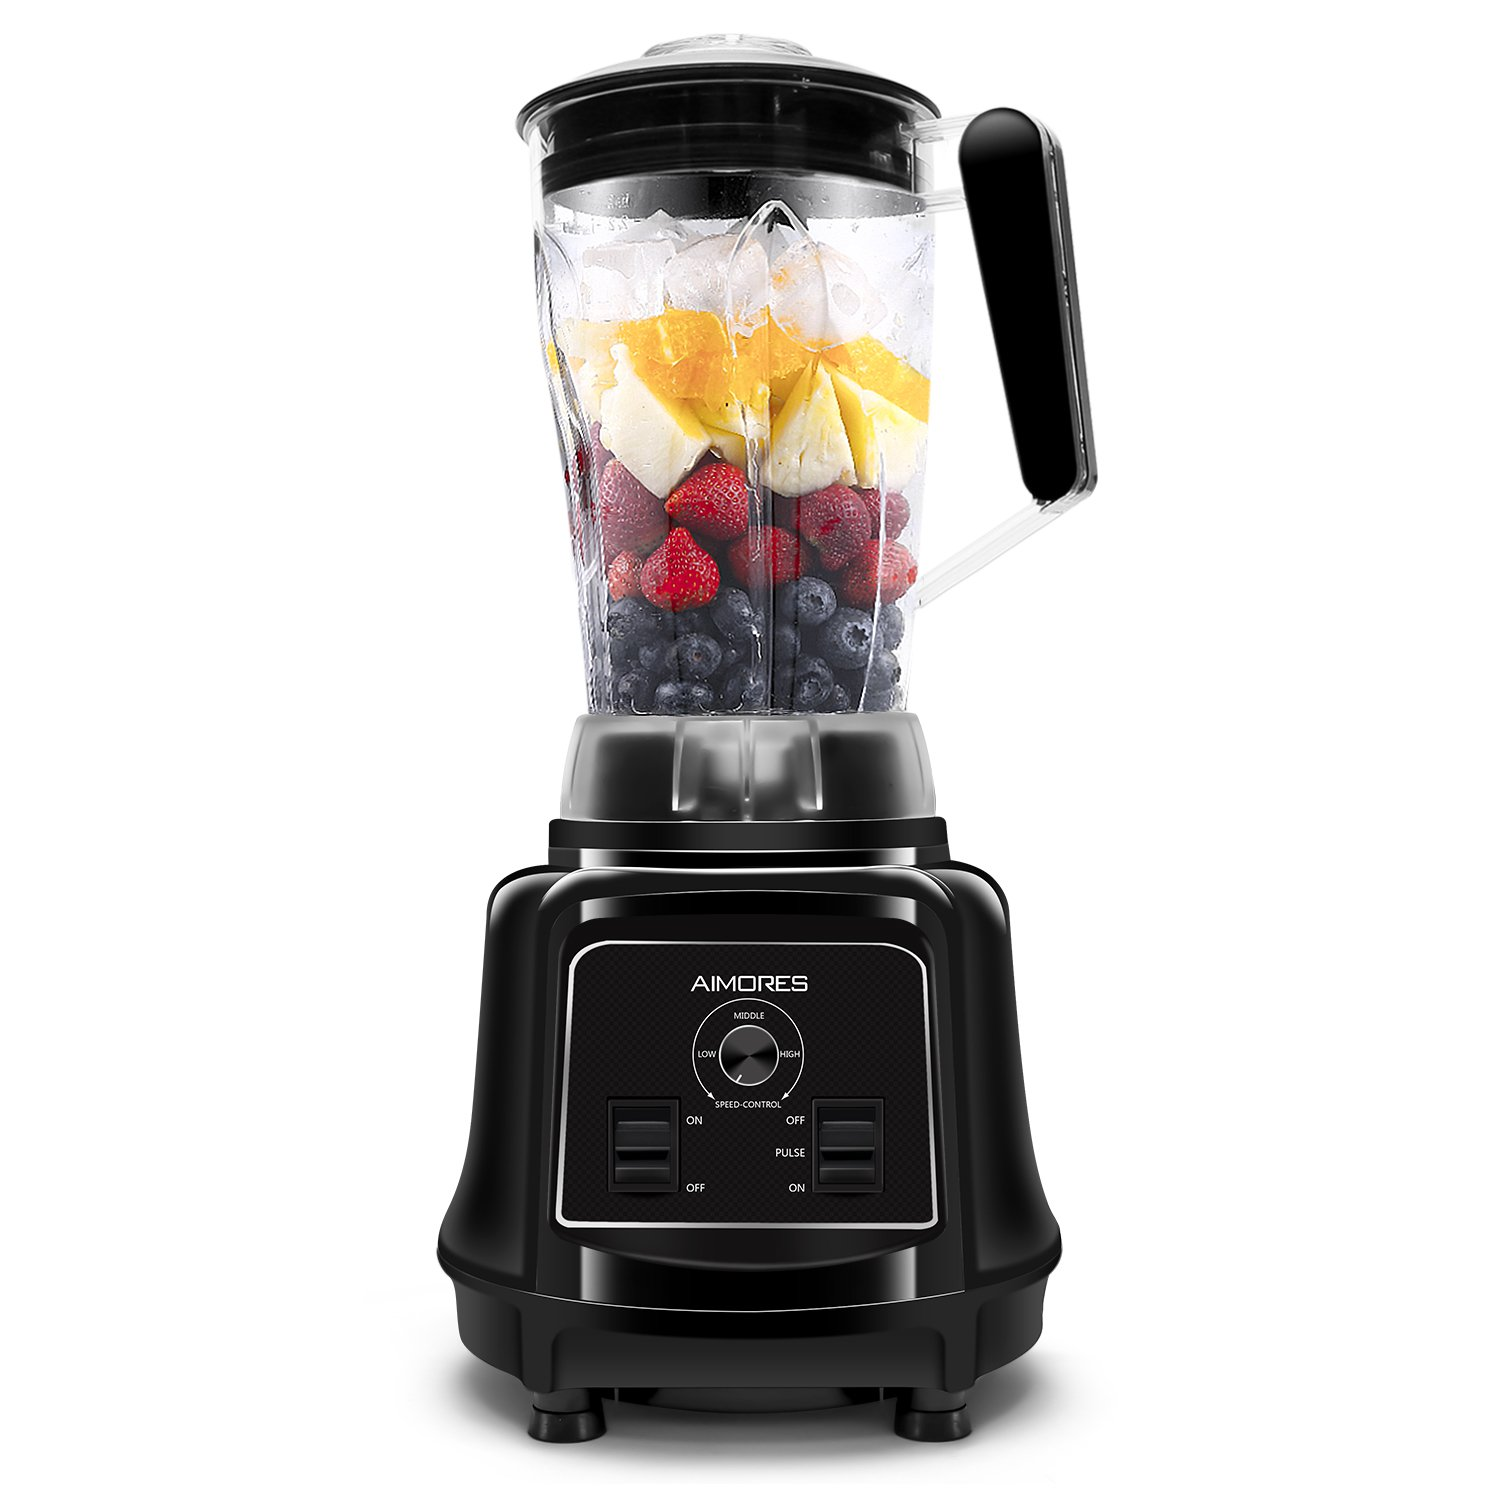 Aimores Professional Blender for Shakes and Smoothies, Food Processor Combo, Heavy Duty Juice Blender, 75oz Pitcher, 28,000RPM, Variable Speed Control, with Tamper & Recipe, ETL/FDA Certified (Black)